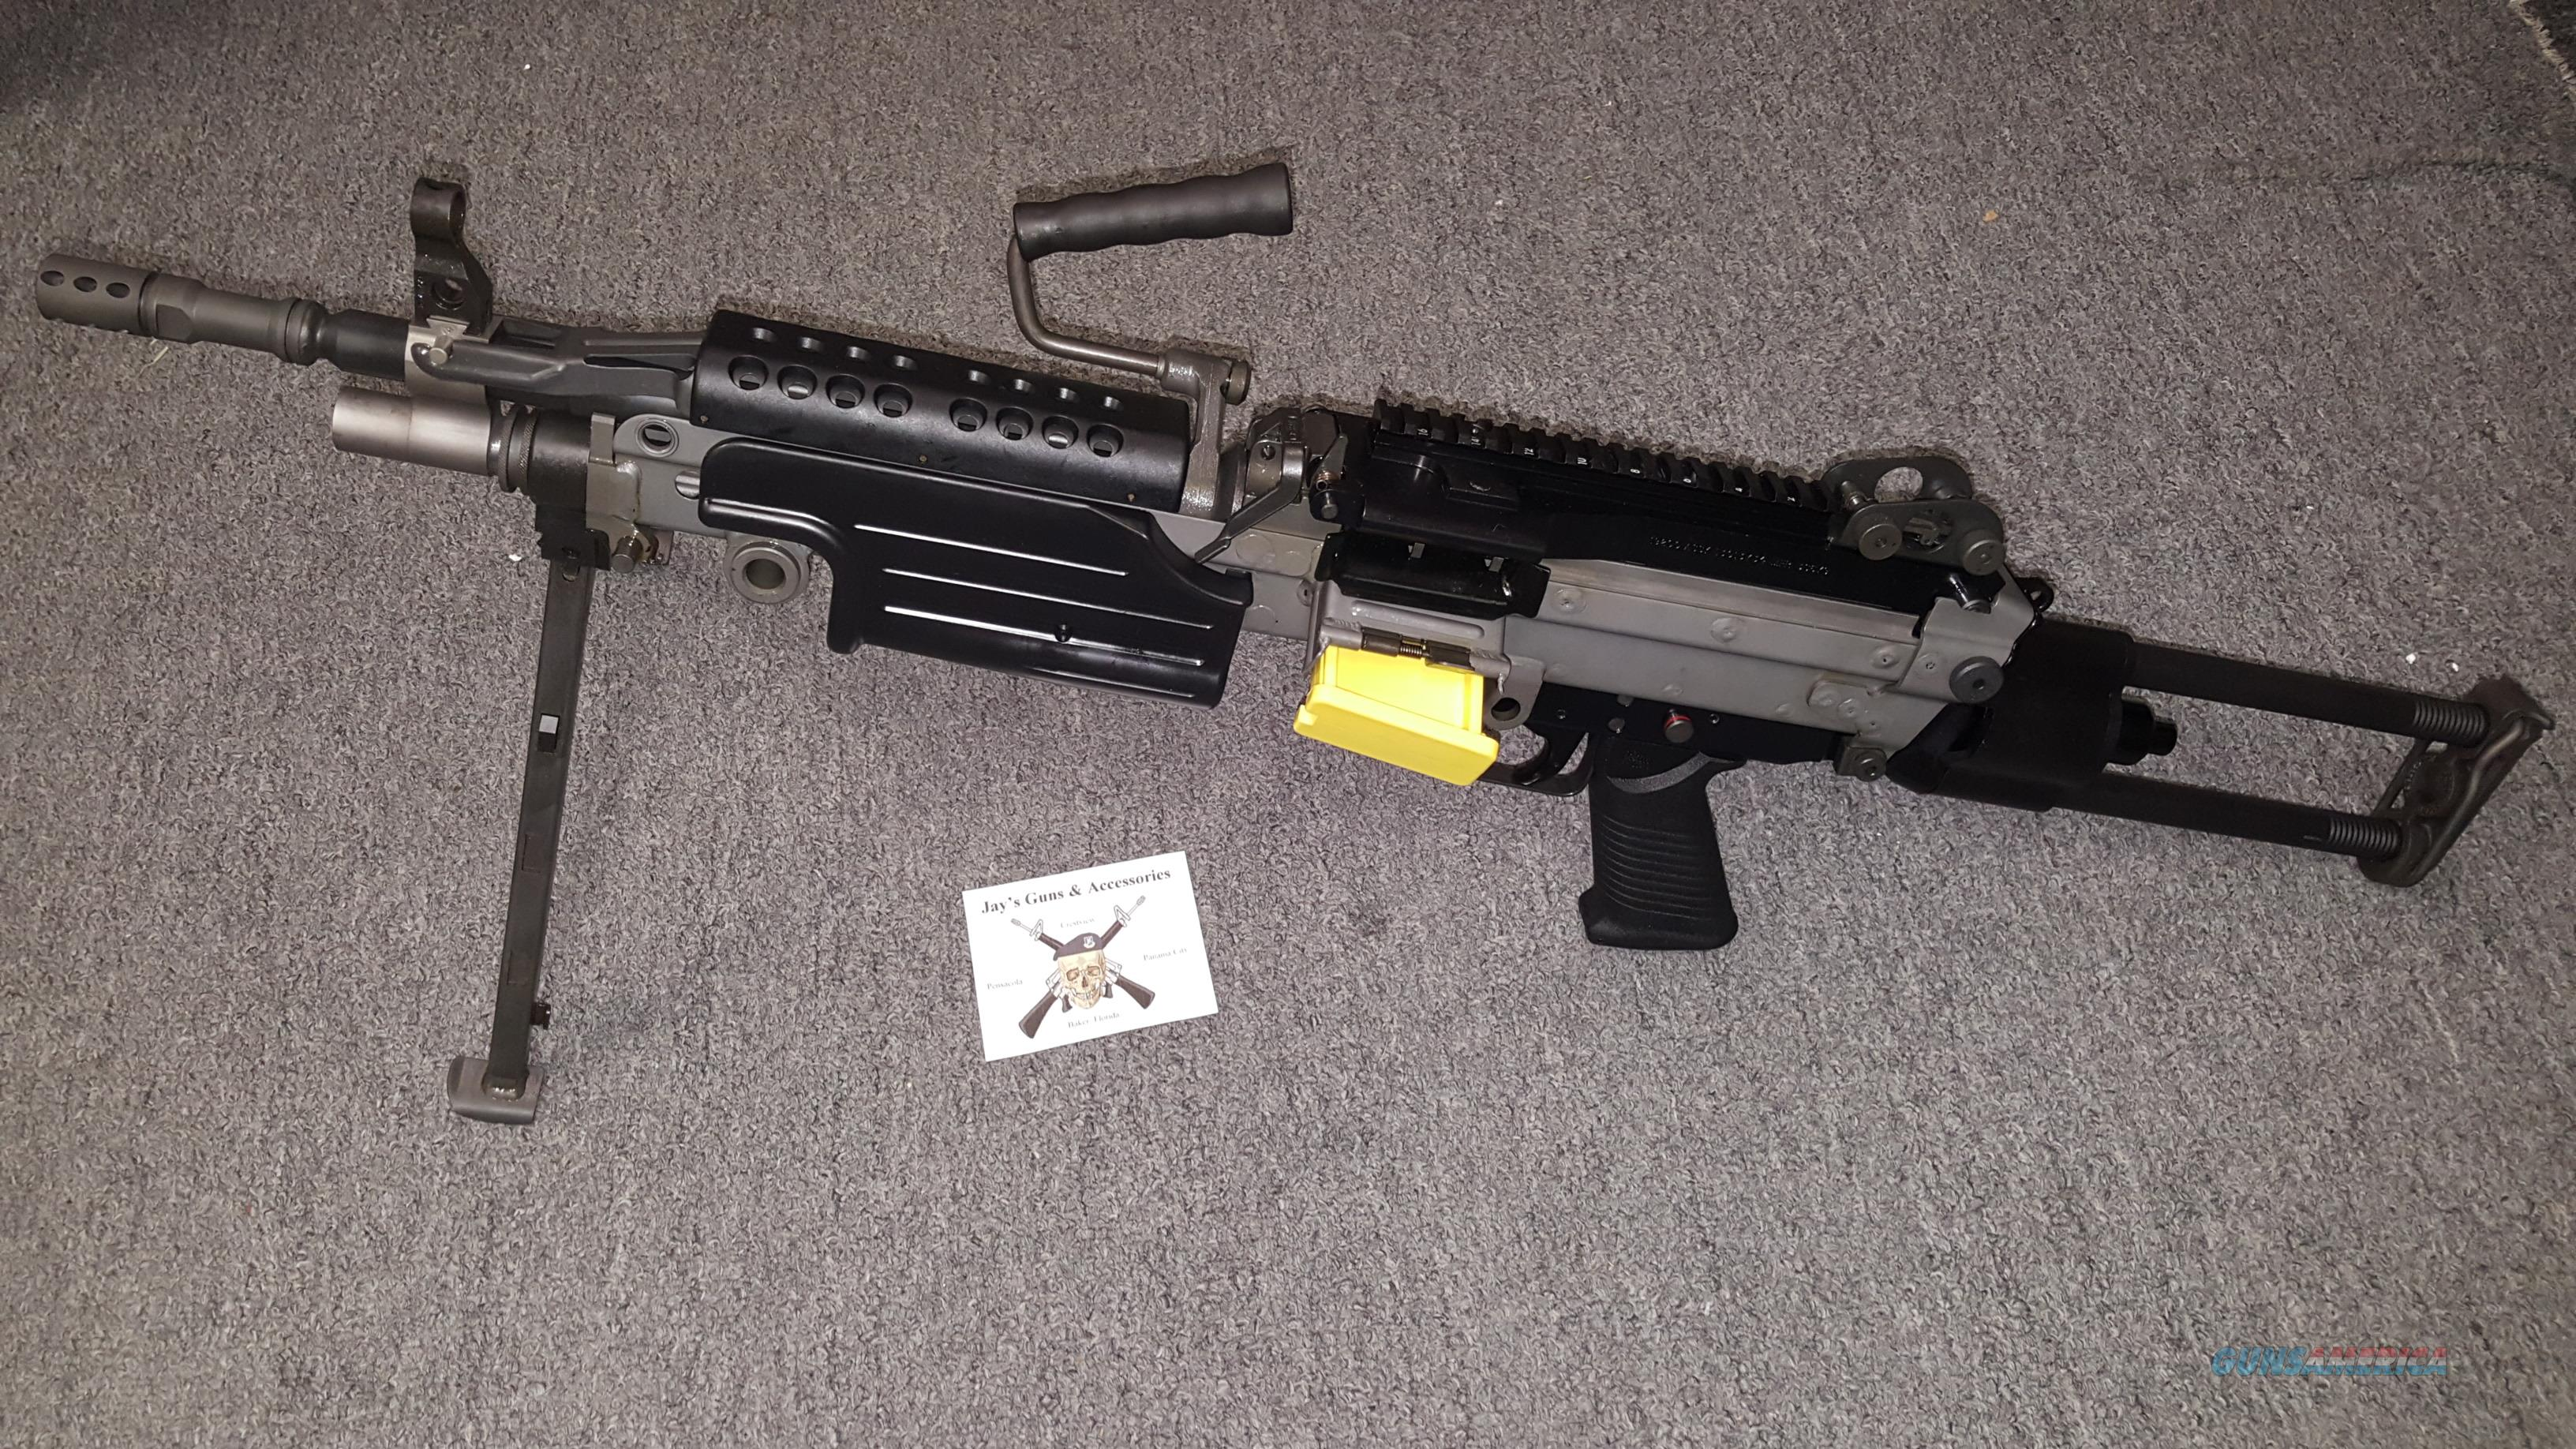 FNH M249 PARA  Guns > Rifles > FNH - Fabrique Nationale (FN) Rifles > Semi-auto > Other